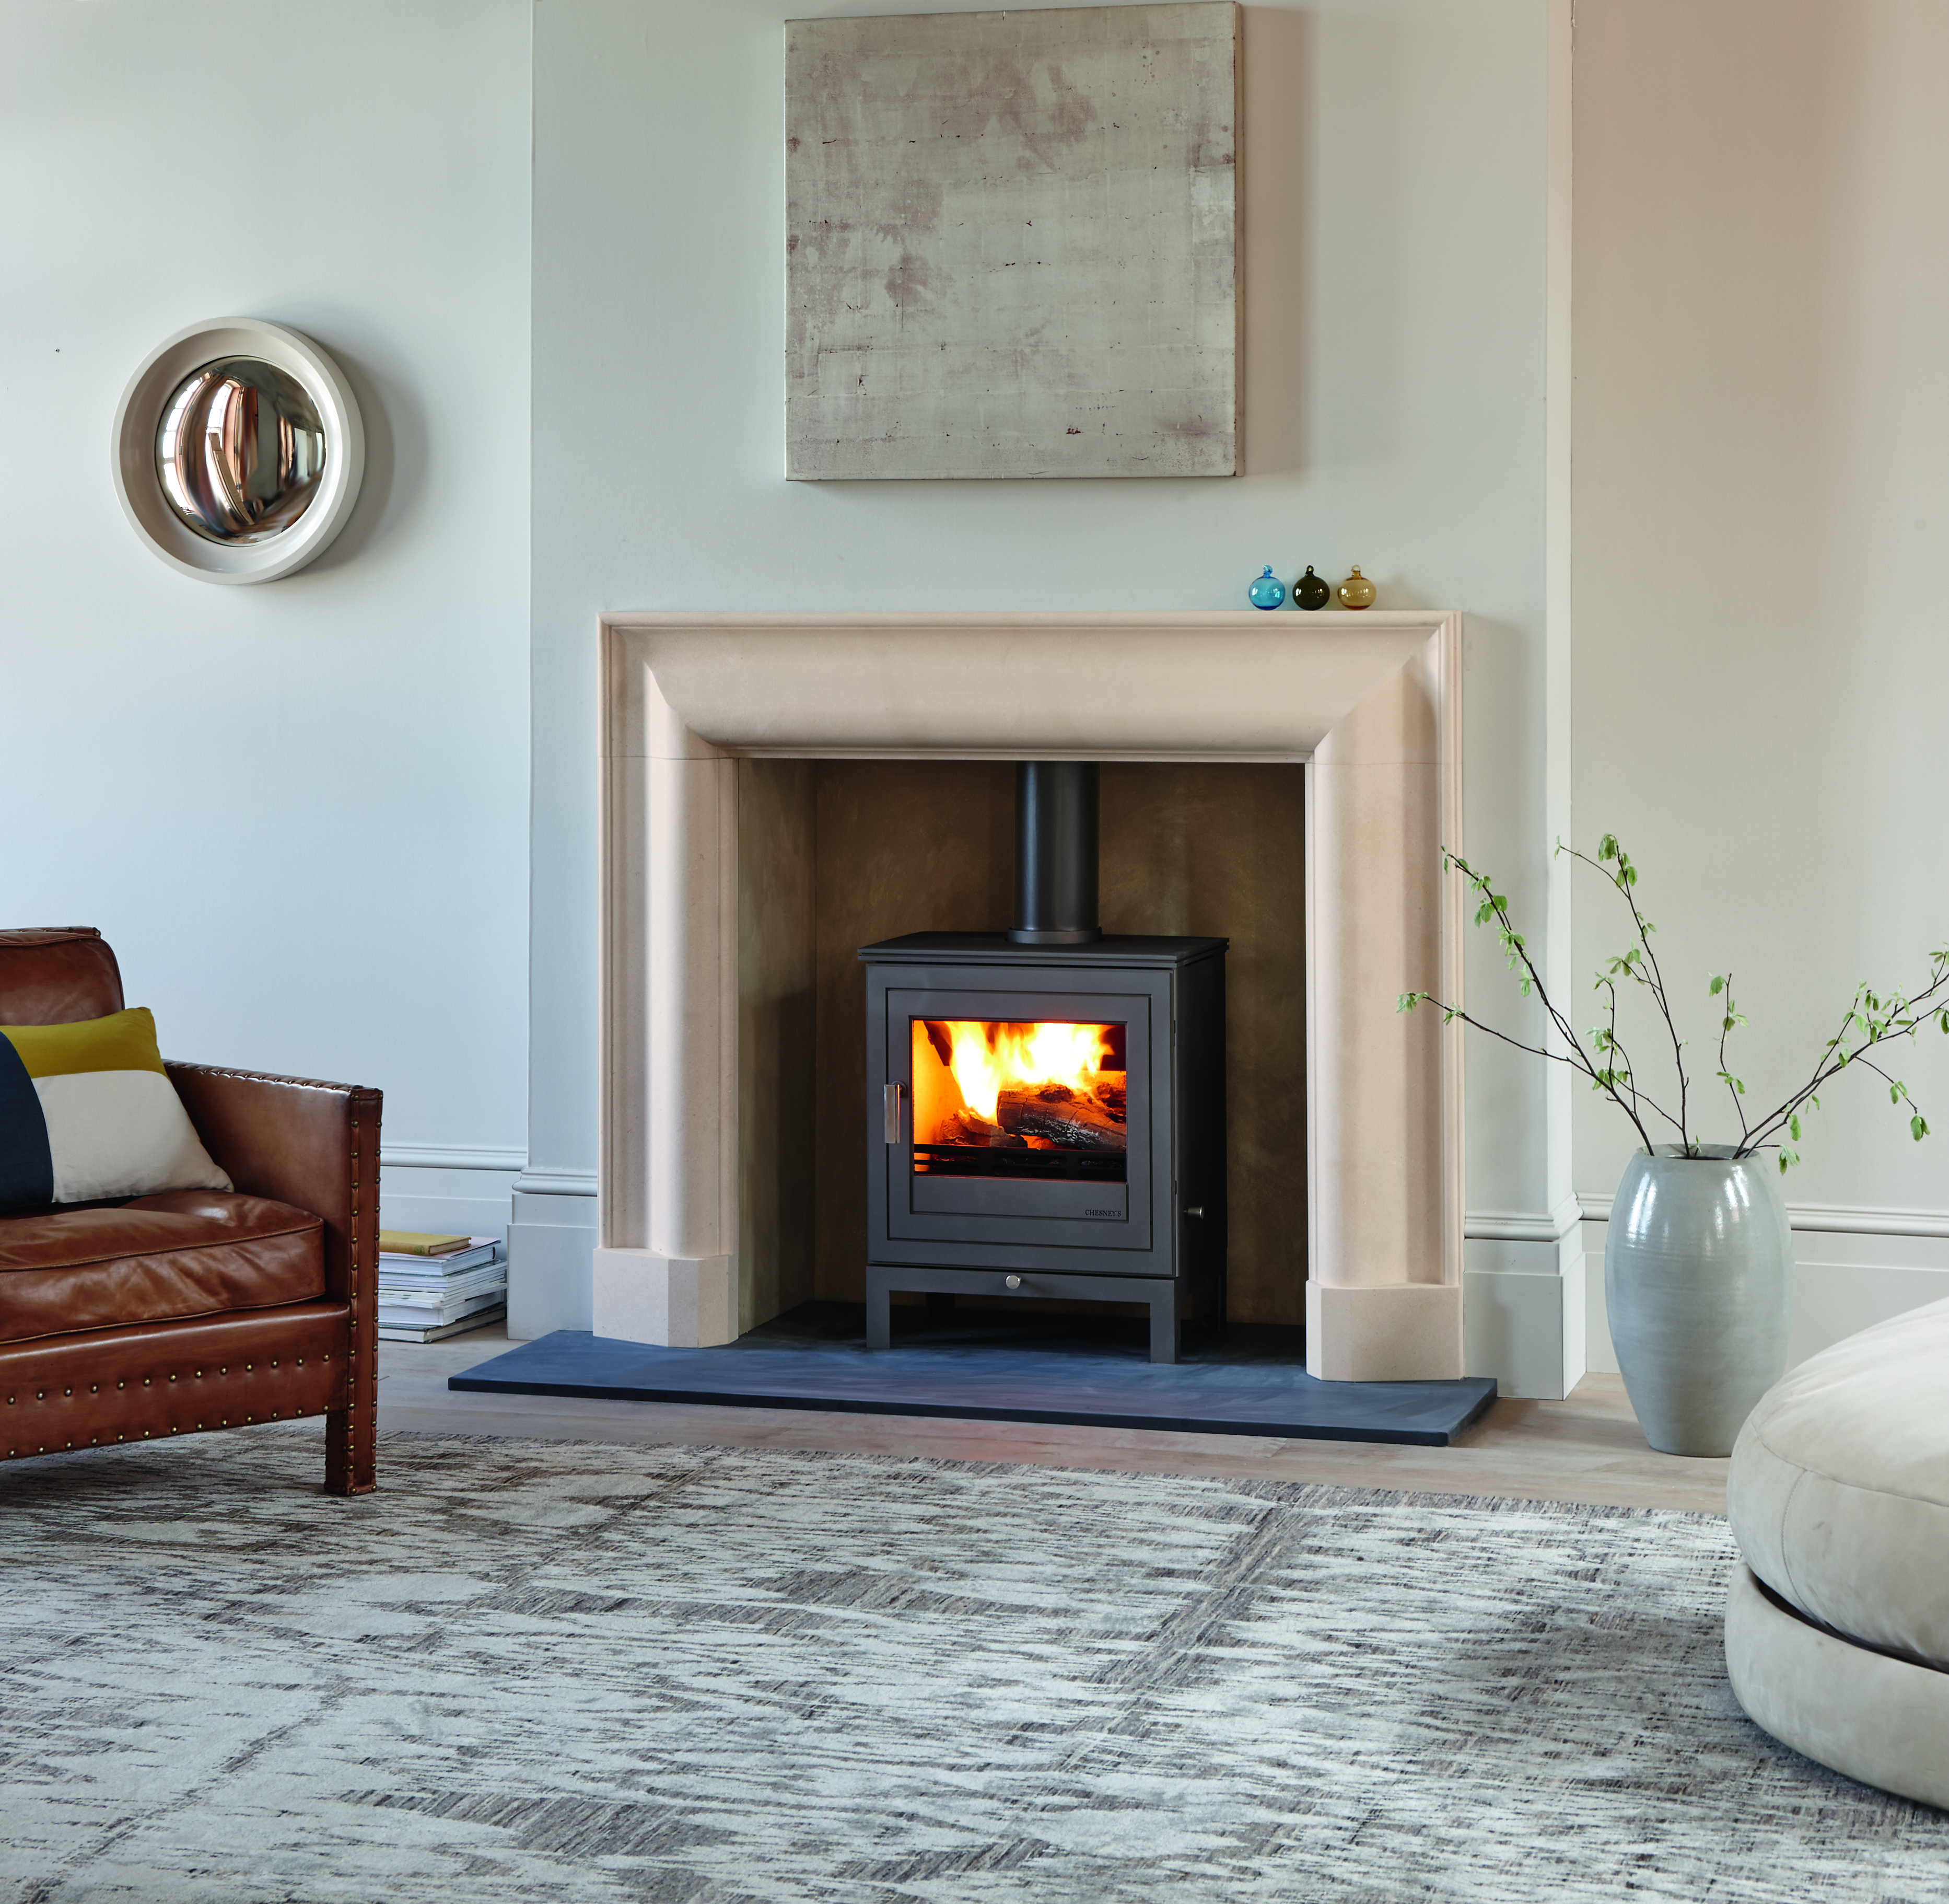 Chesneys Kent Bolection Fireplace and Shoreditch stoves at showroom Norwich